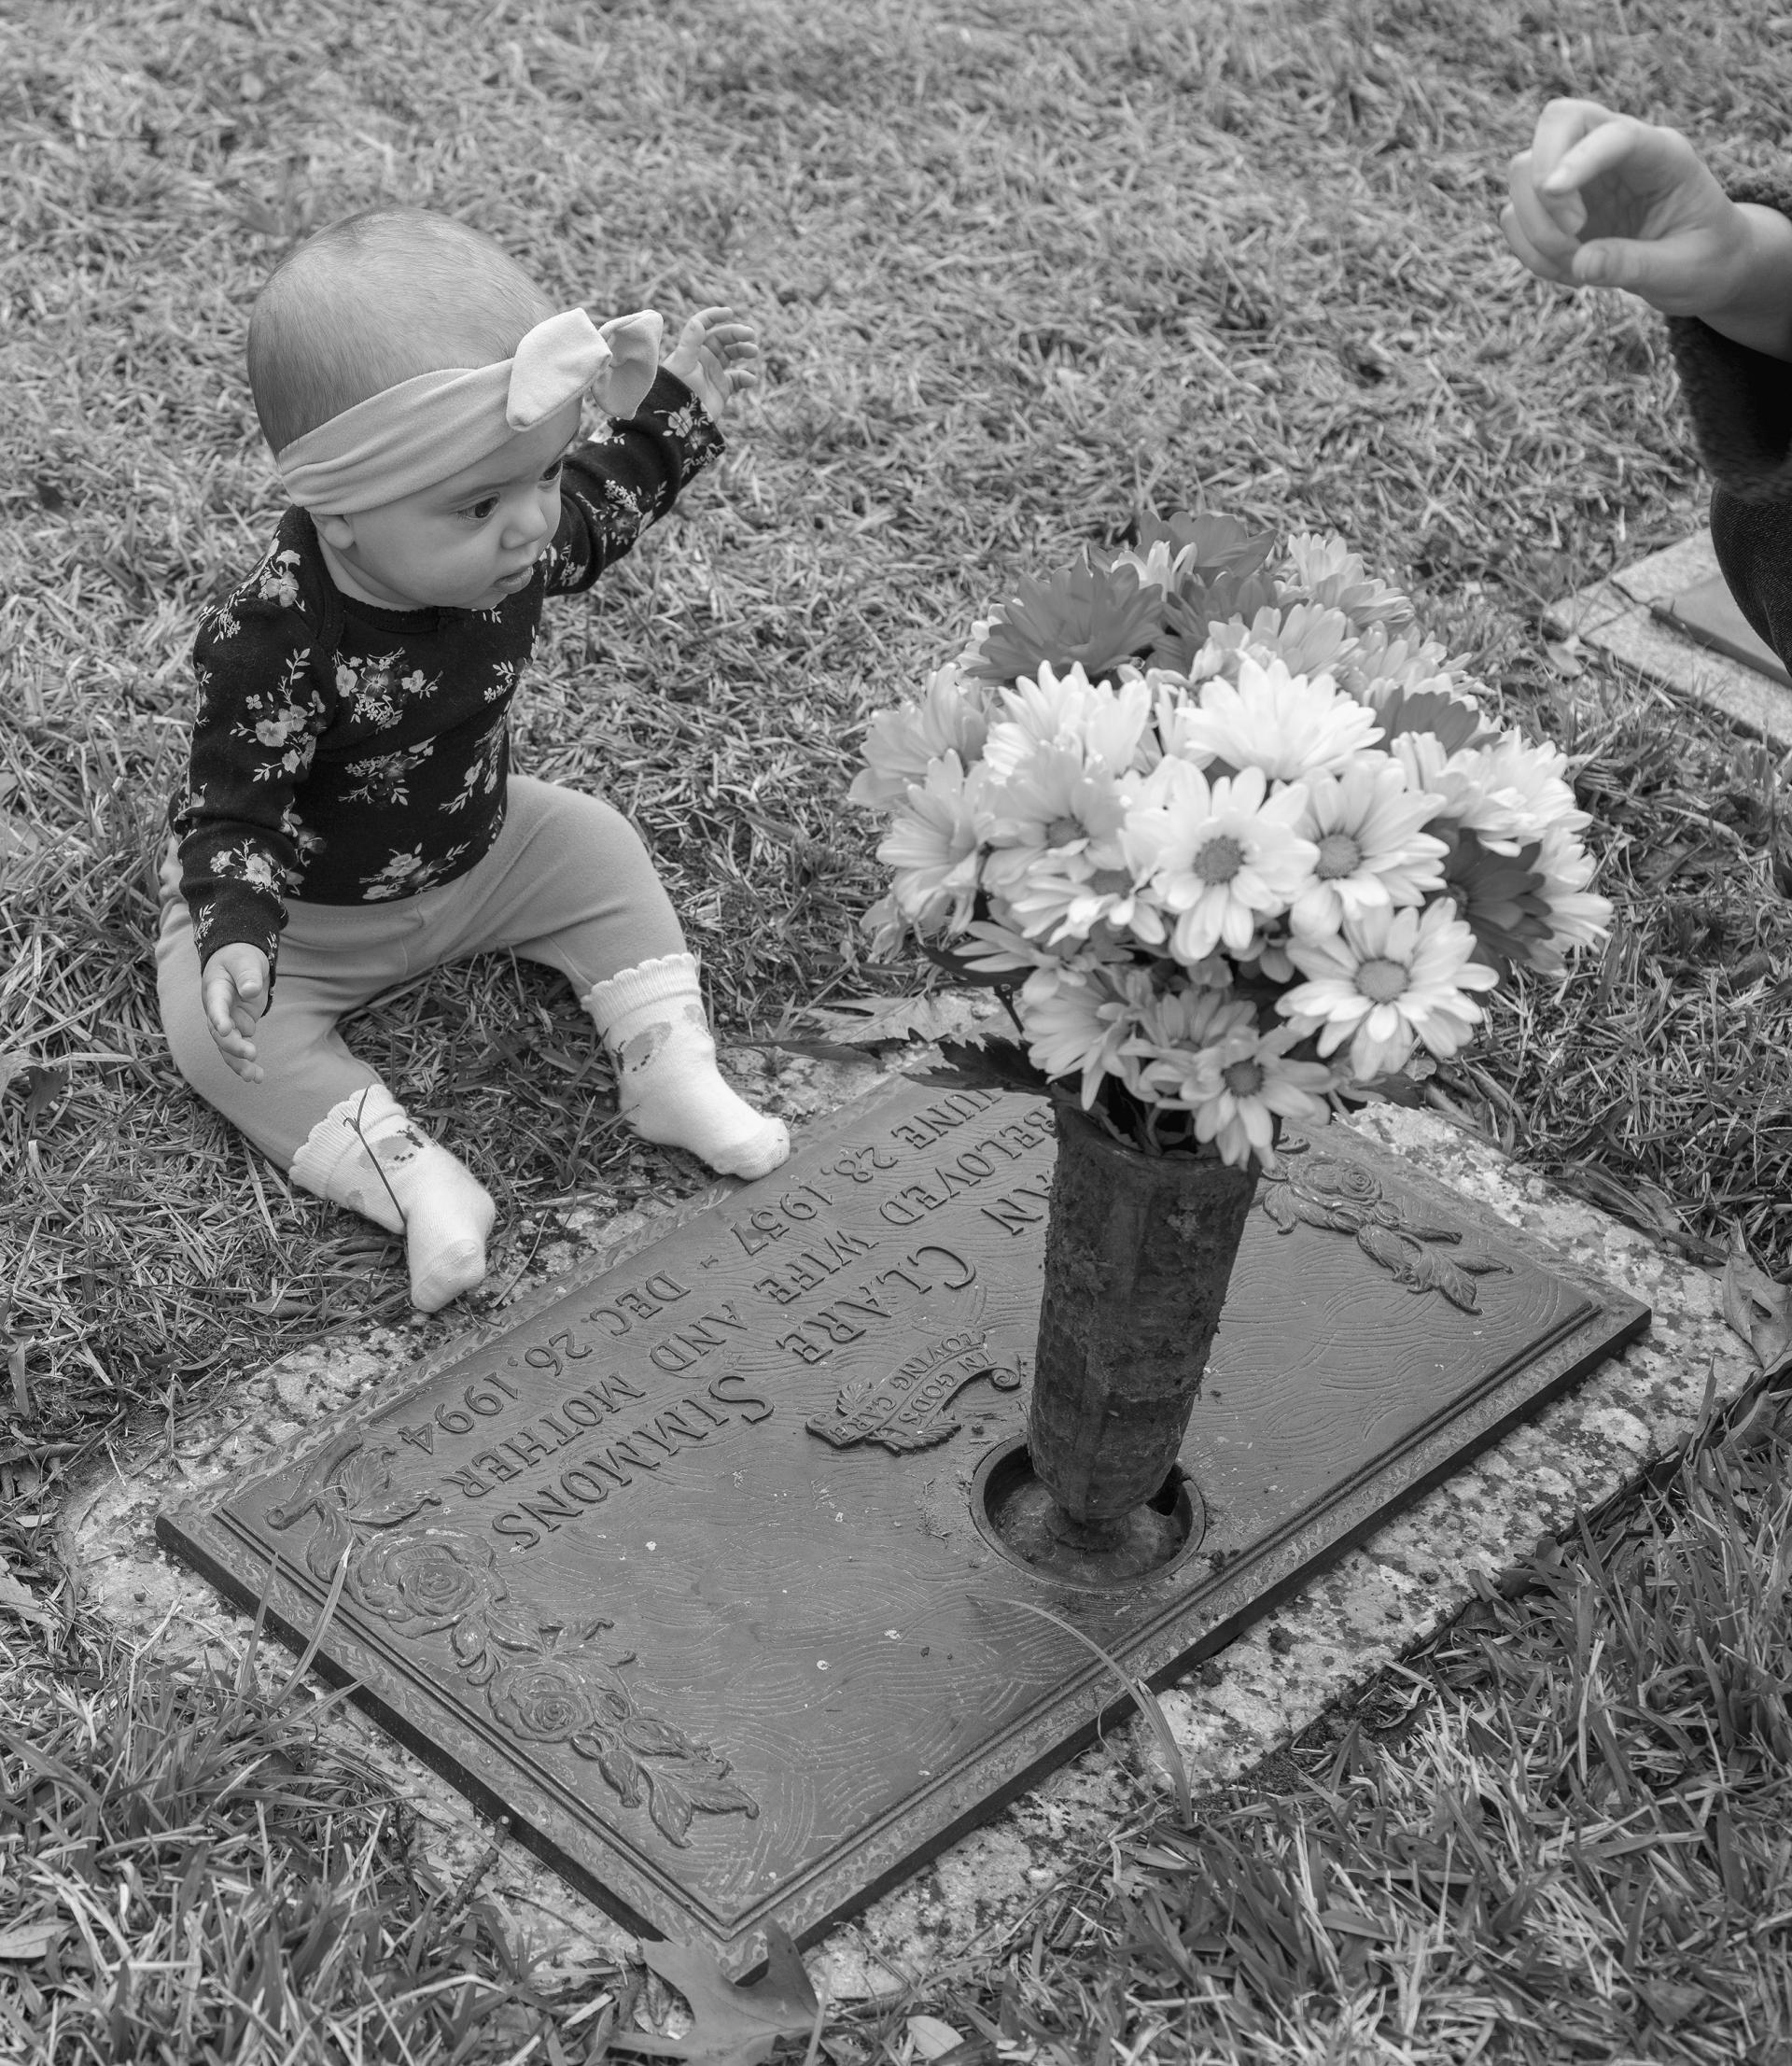 A black and white photograph of a white 6-month-old baby wearing a floral top and a bow, sitting behind a metal headstone. The headstone has a vase on top with multicolored gerbera daisies in it. A white hand is coming into the frame on the right hand side, only visible up to the wrist.